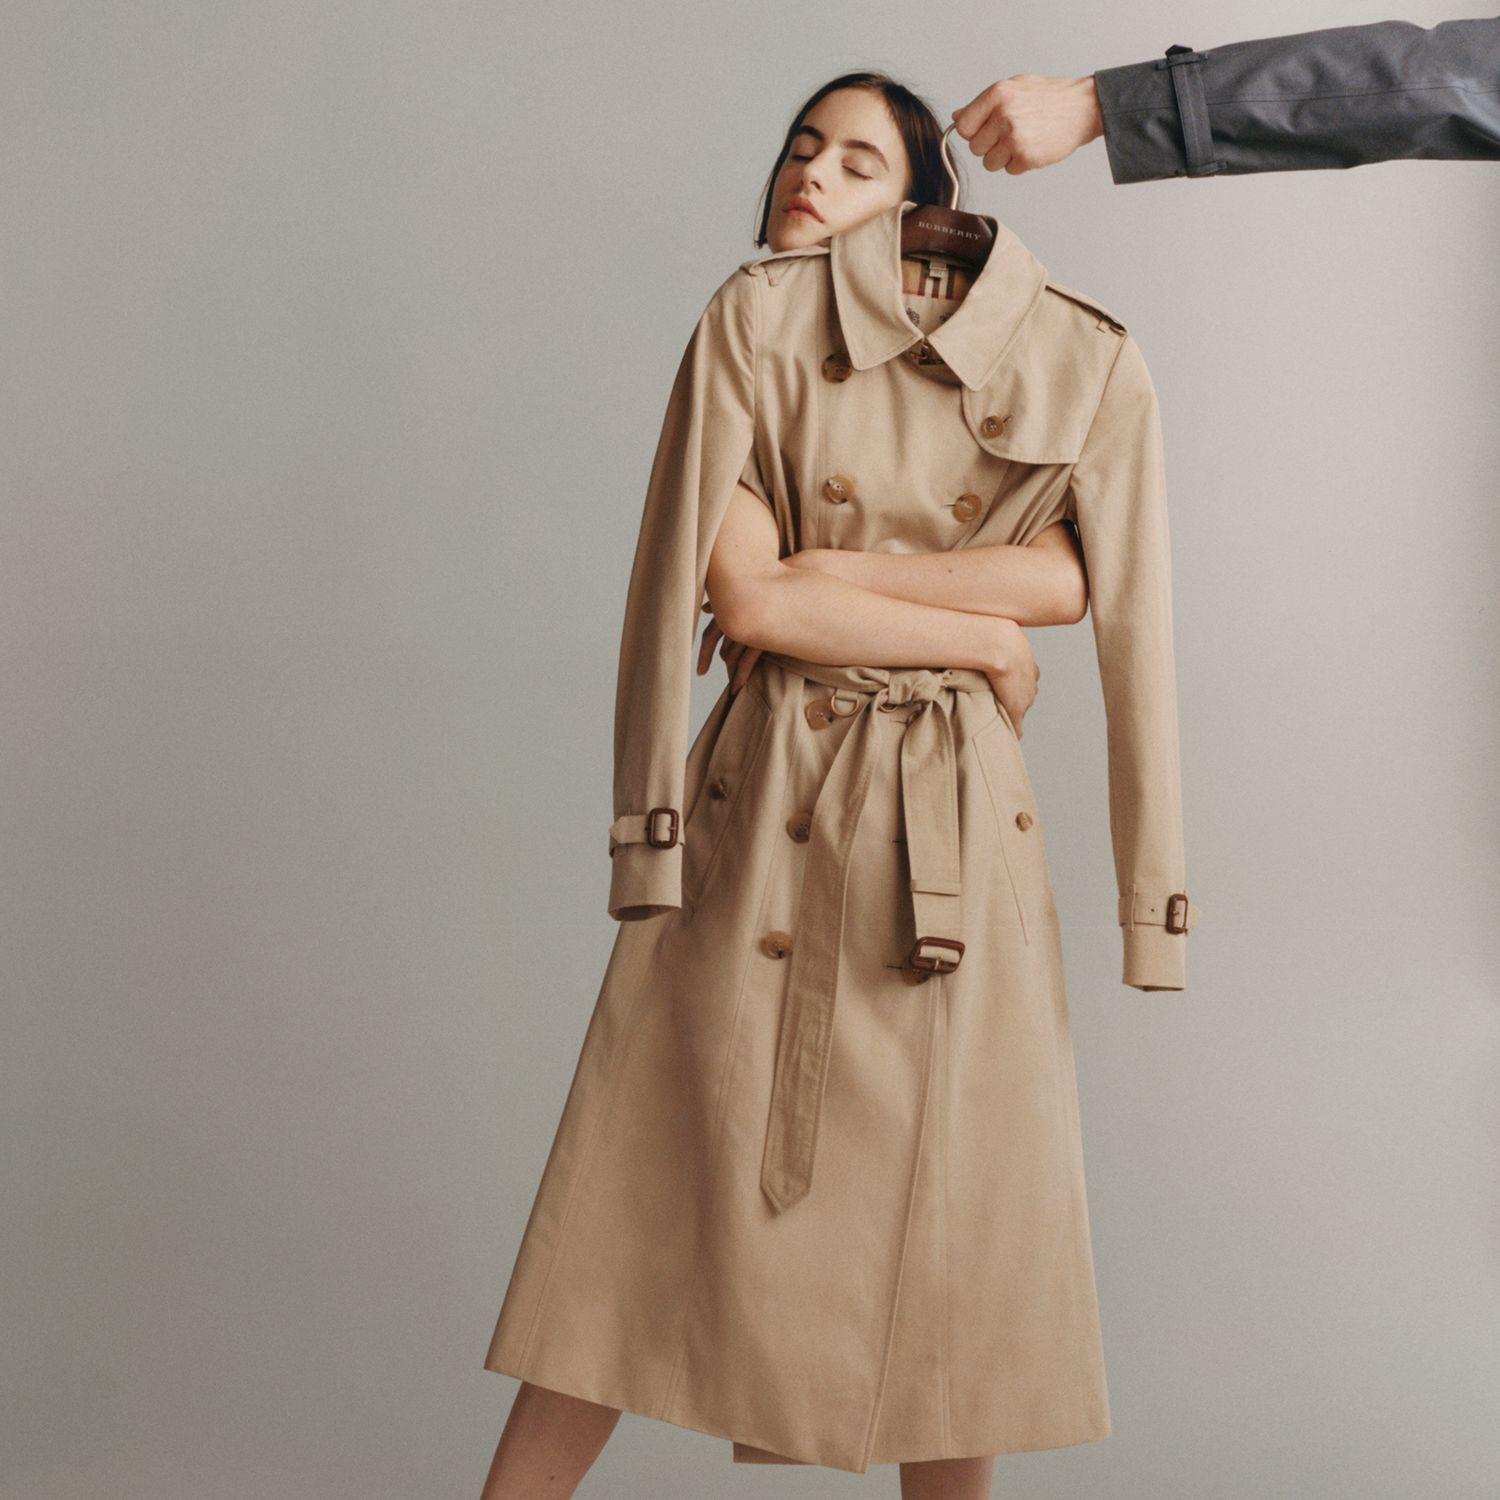 Il trench coat